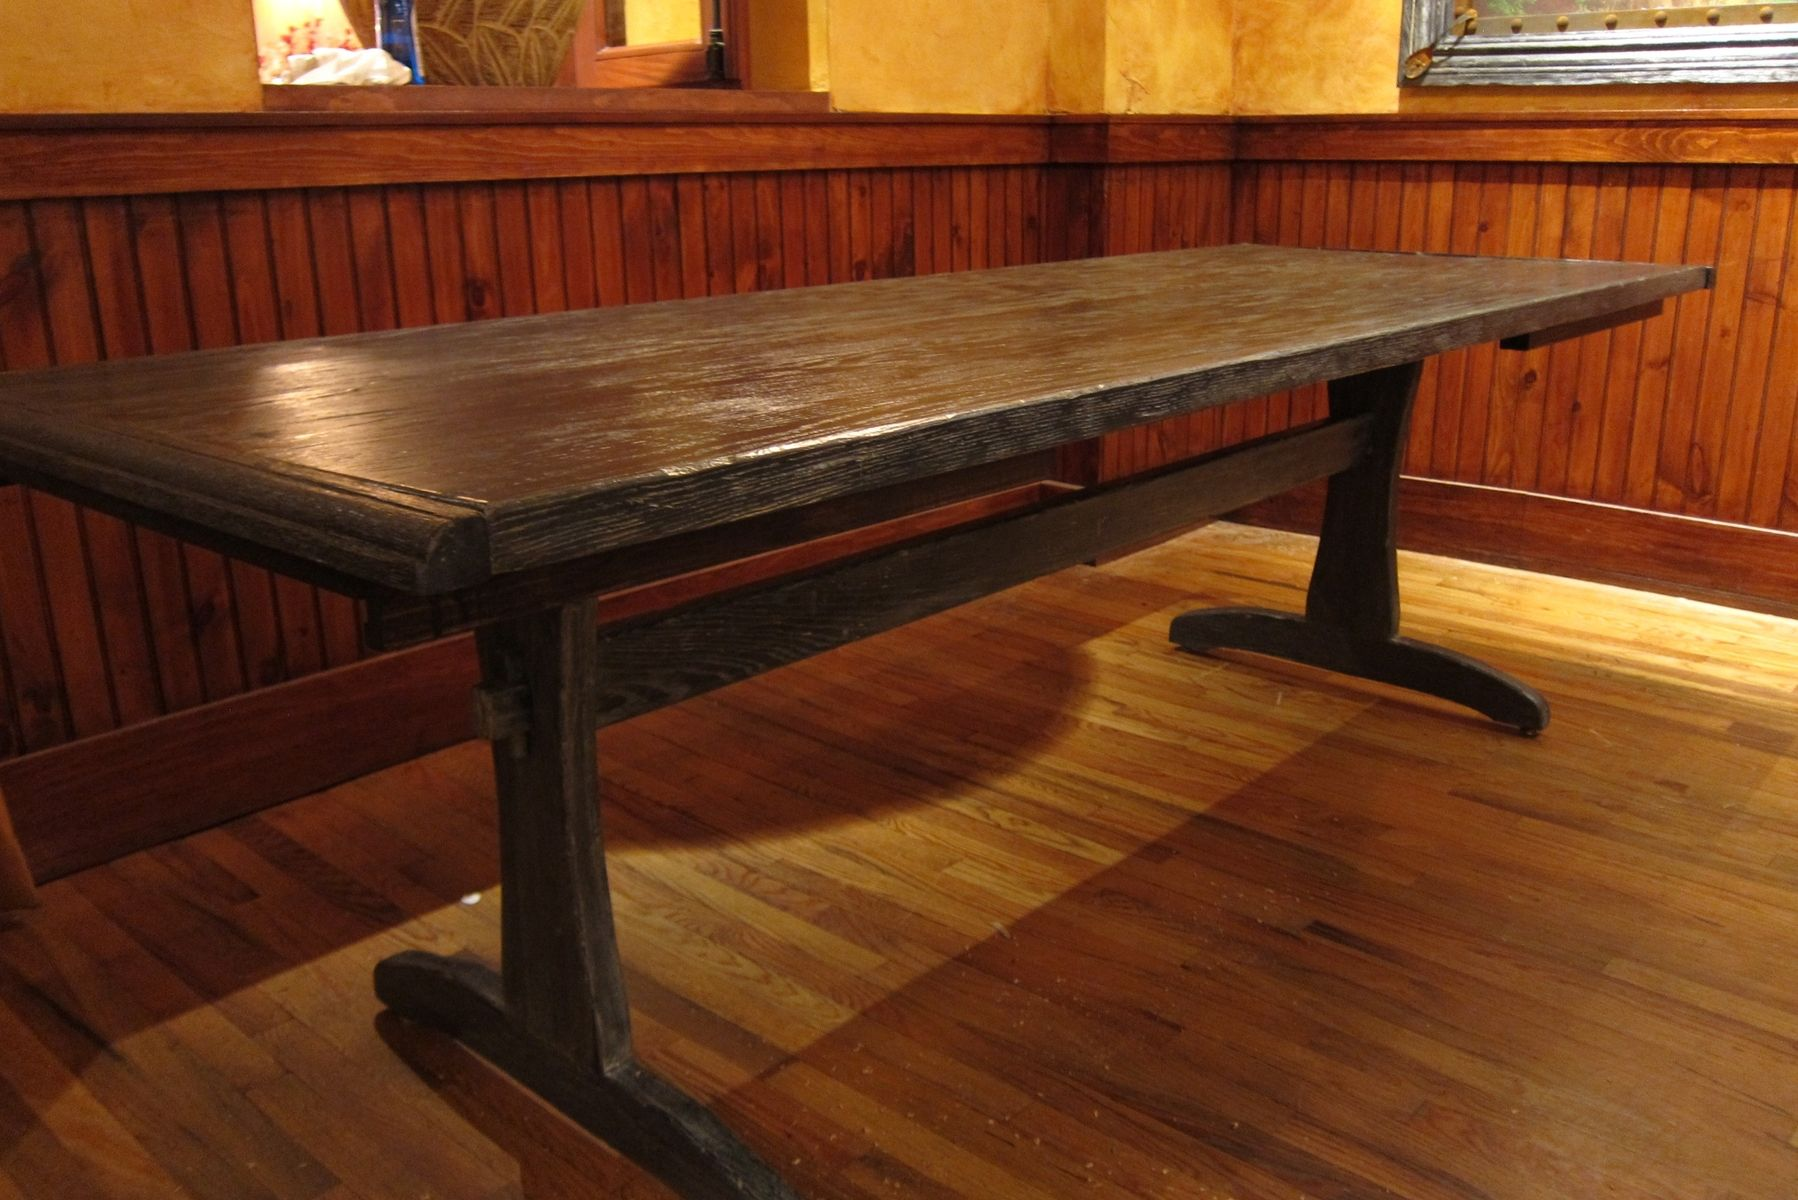 Fresh Handmade Rustic Dining Table by Recollection Design | CustomMade.com PJ05